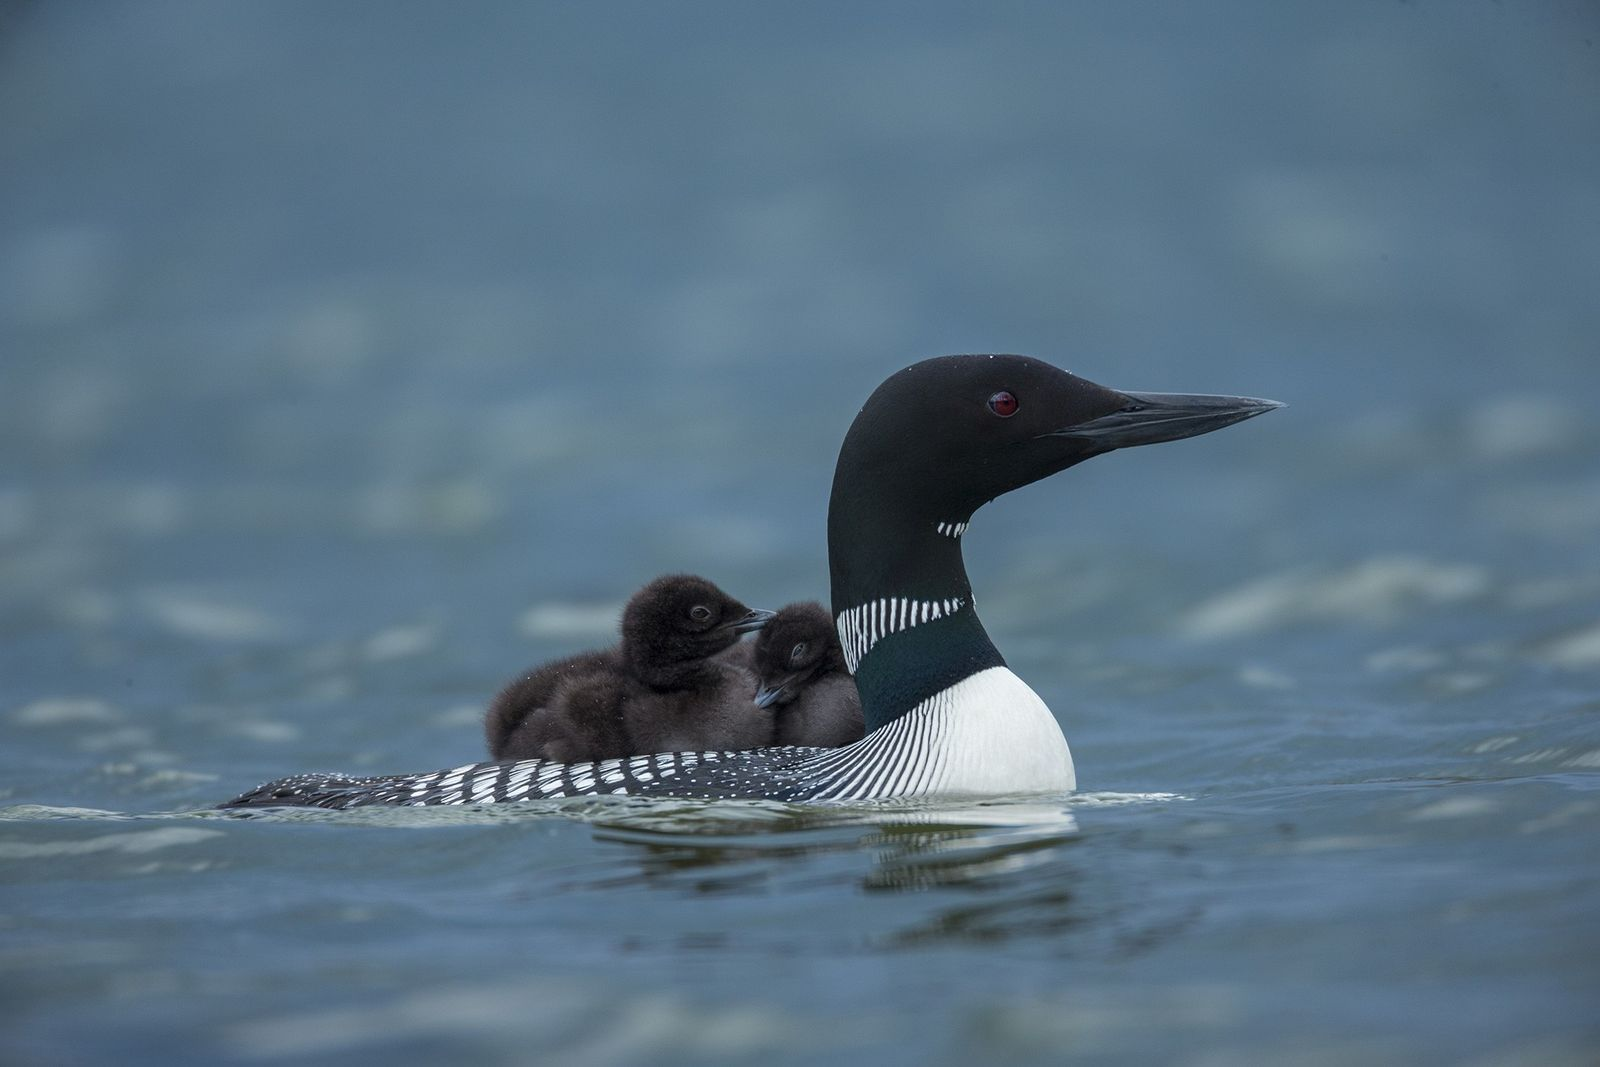 Why did a loon stab a bald eagle through the heart?